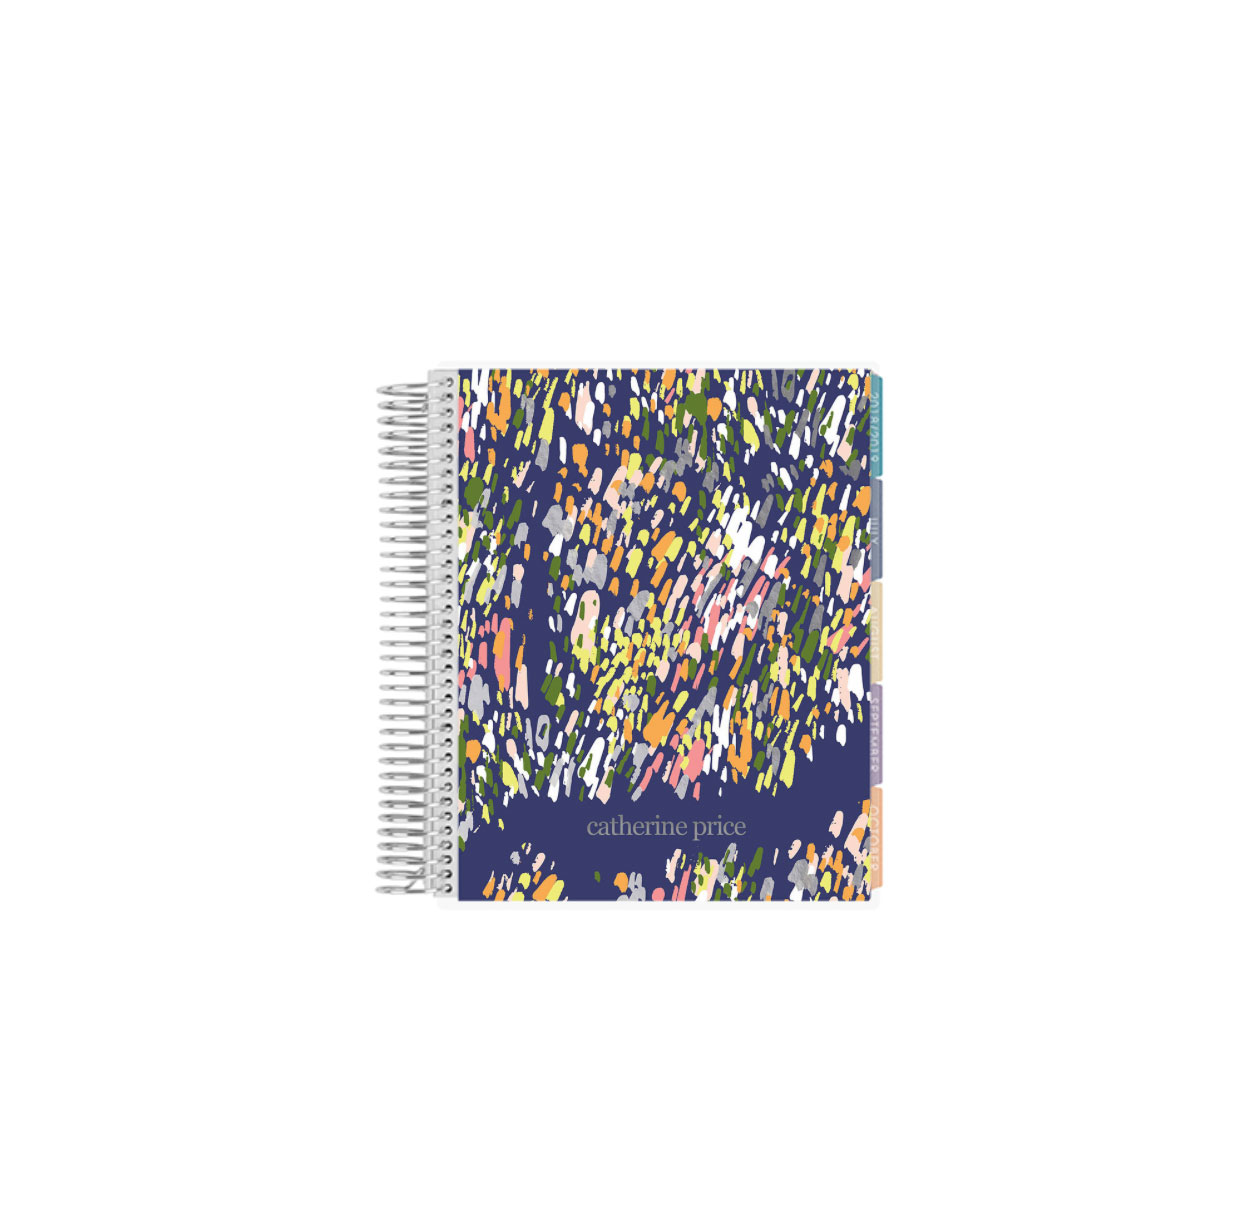 2019 Daily, Weekly, and Monthly Planners Erin Condren Oh Joy! Dainty Dabs LifePlanner